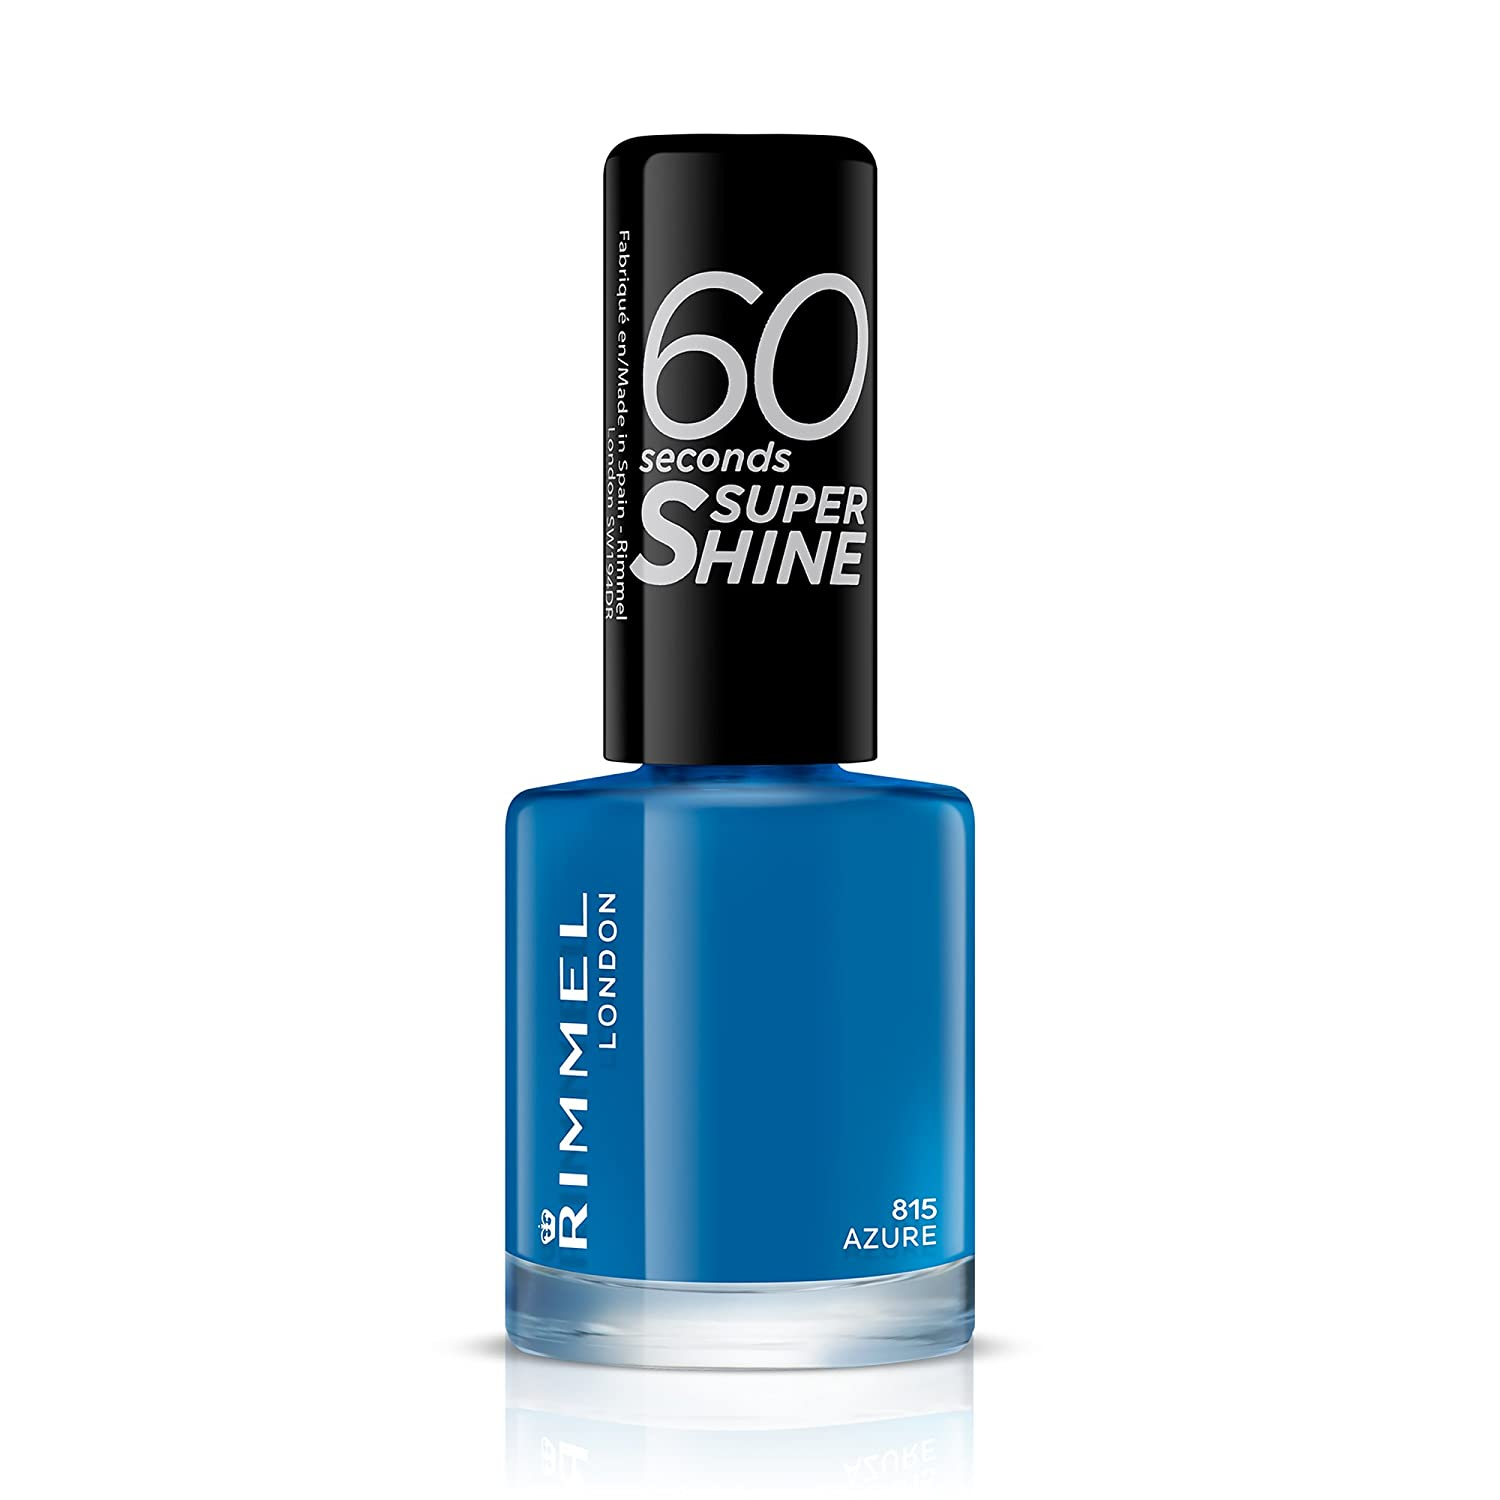 Rimmel London 60 Seconds Super Shine Esmalte de Uñas Tono 815-34 gr ...